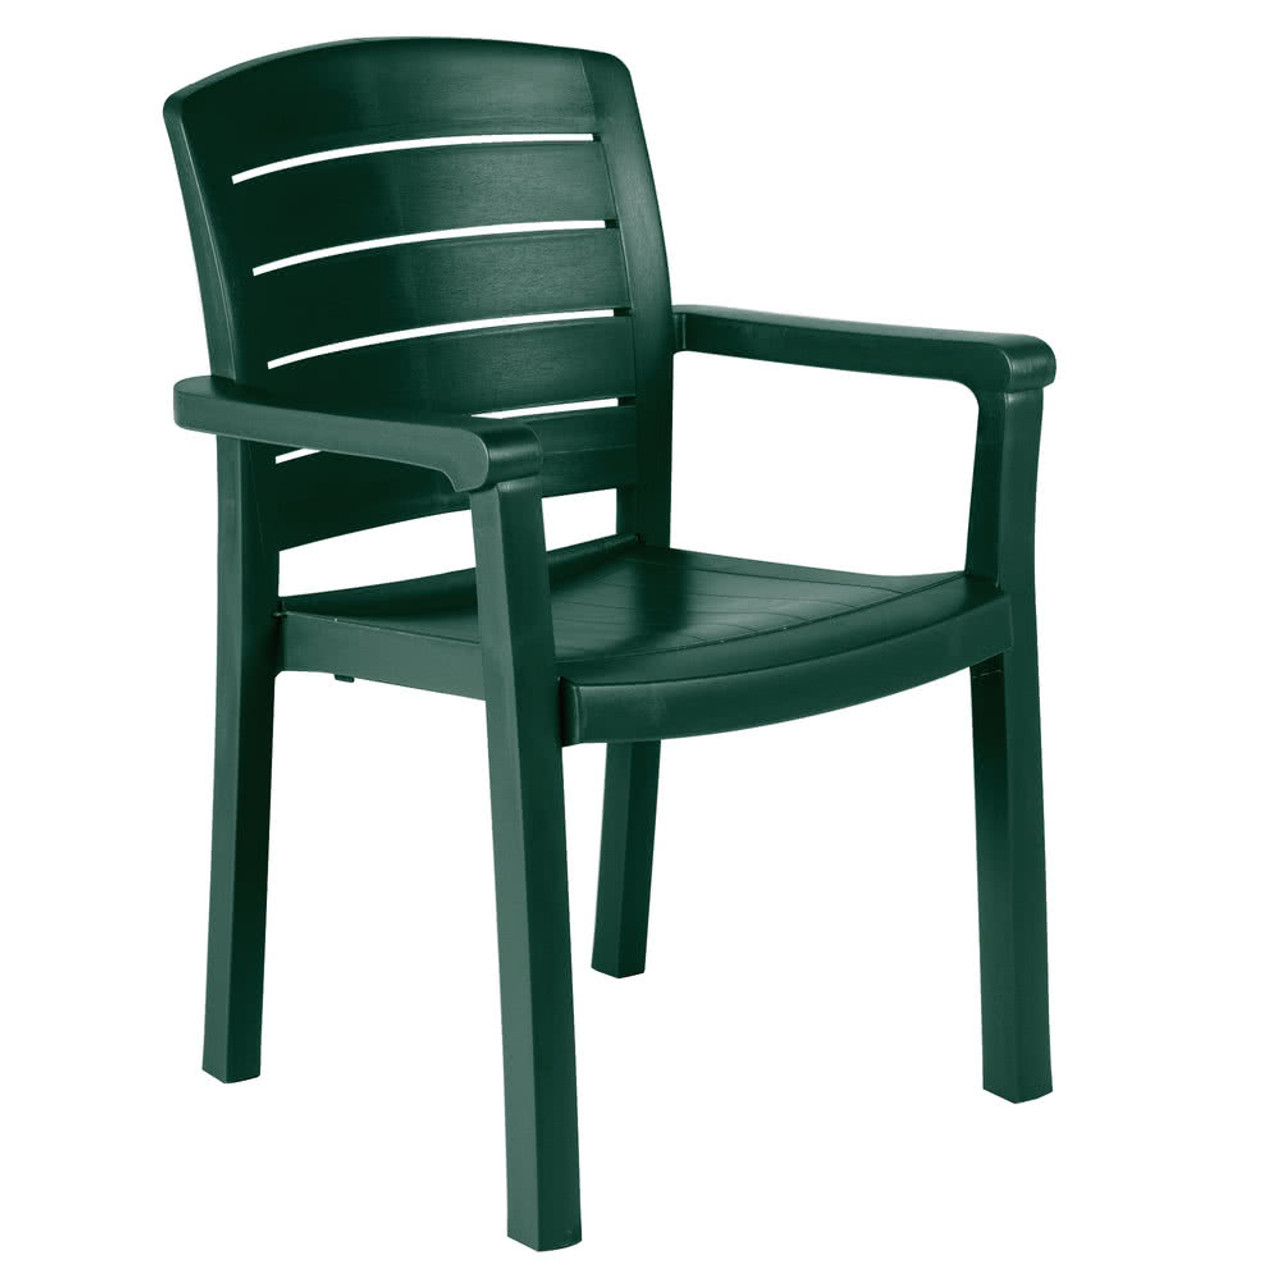 Grosfillex Acadia Stacking Resin Arm Chair Low Price